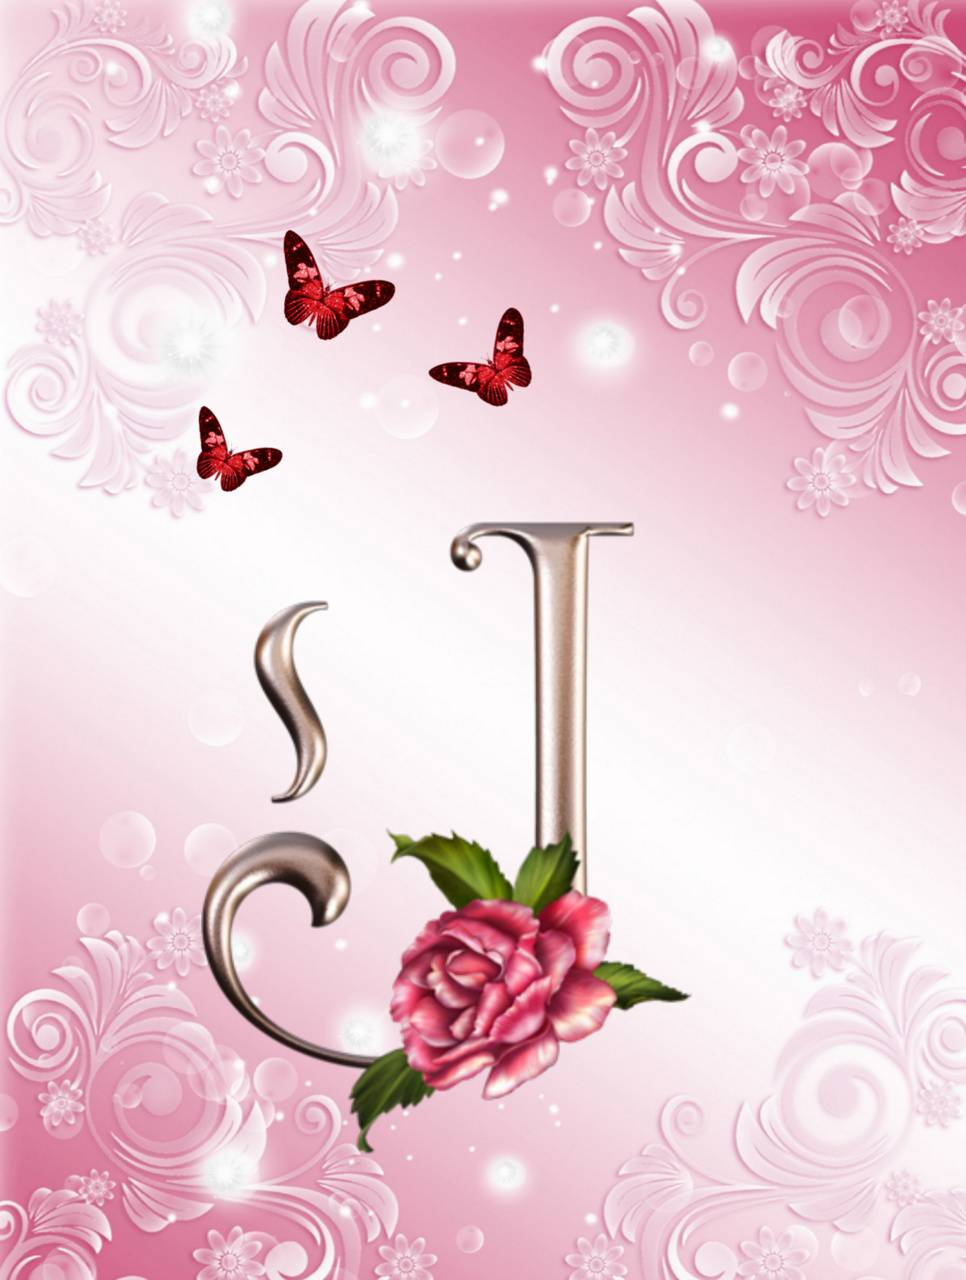 Download Letter J Wallpaper By Bluecoral74 79 Free On Zedge Now Browse Millions Of Popular Abst Paper Quilling Designs Alphabet Wallpaper Apple Wallpaper